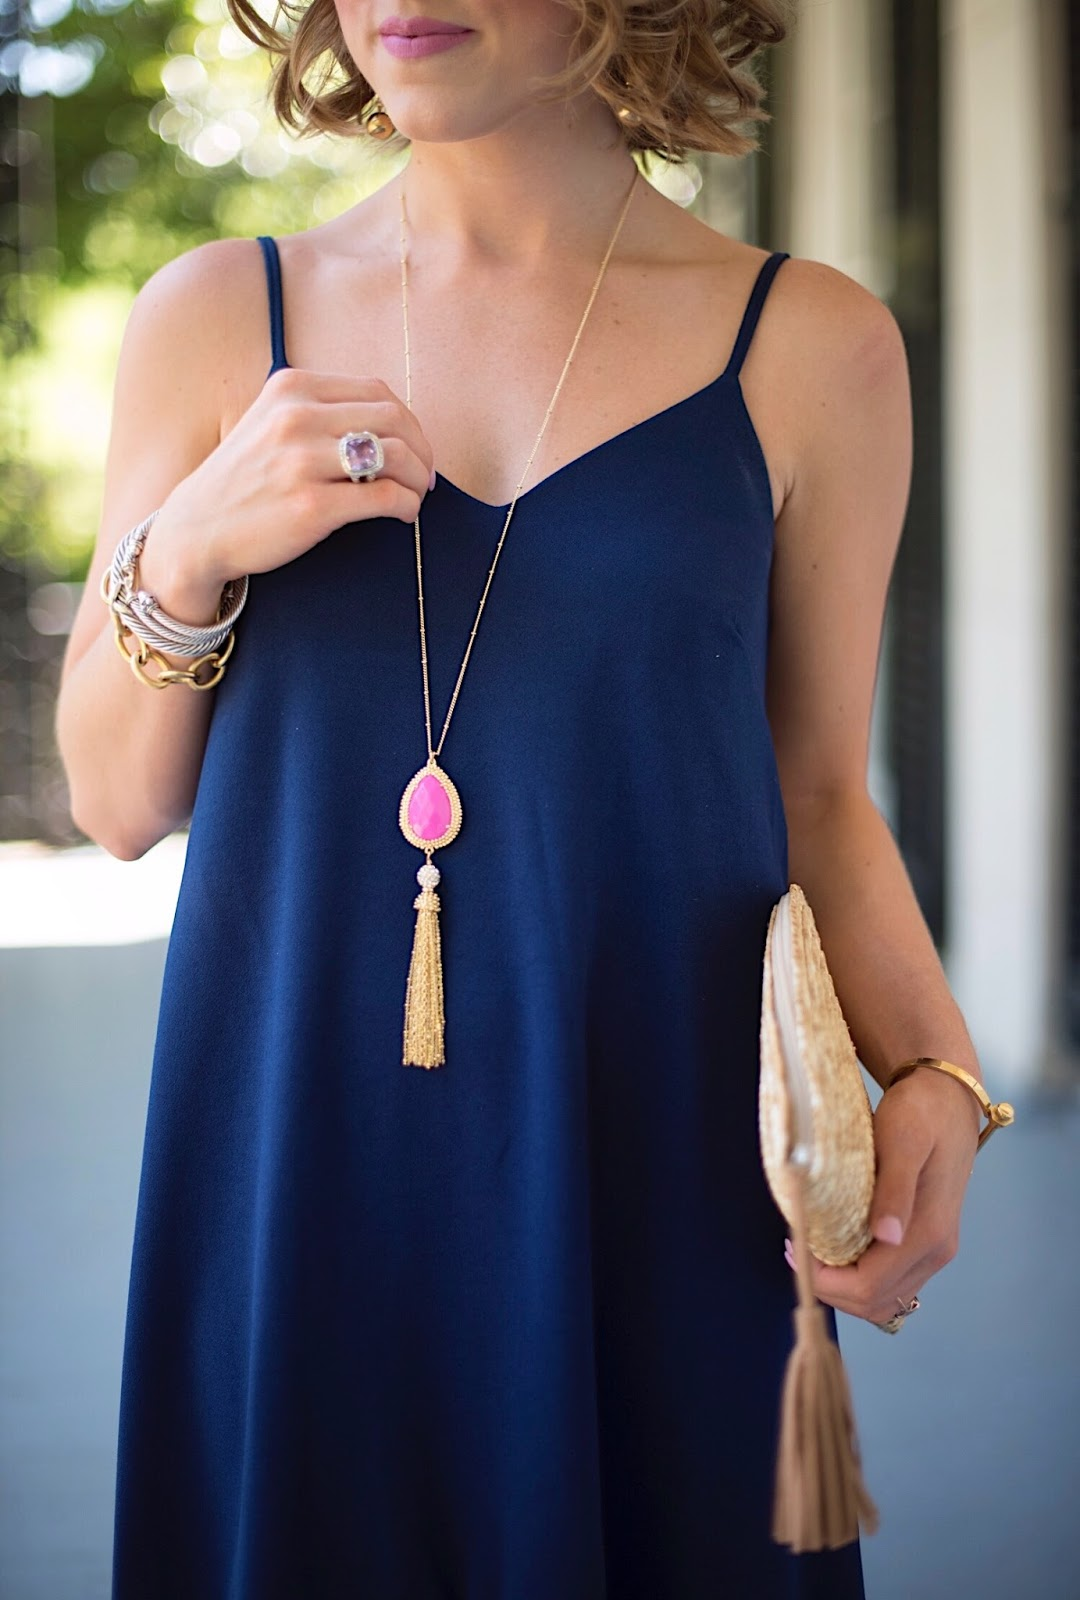 Lilly Pulitzer Sea Urchin Tassel Necklace - Click through to see more on Something Delightful Blog